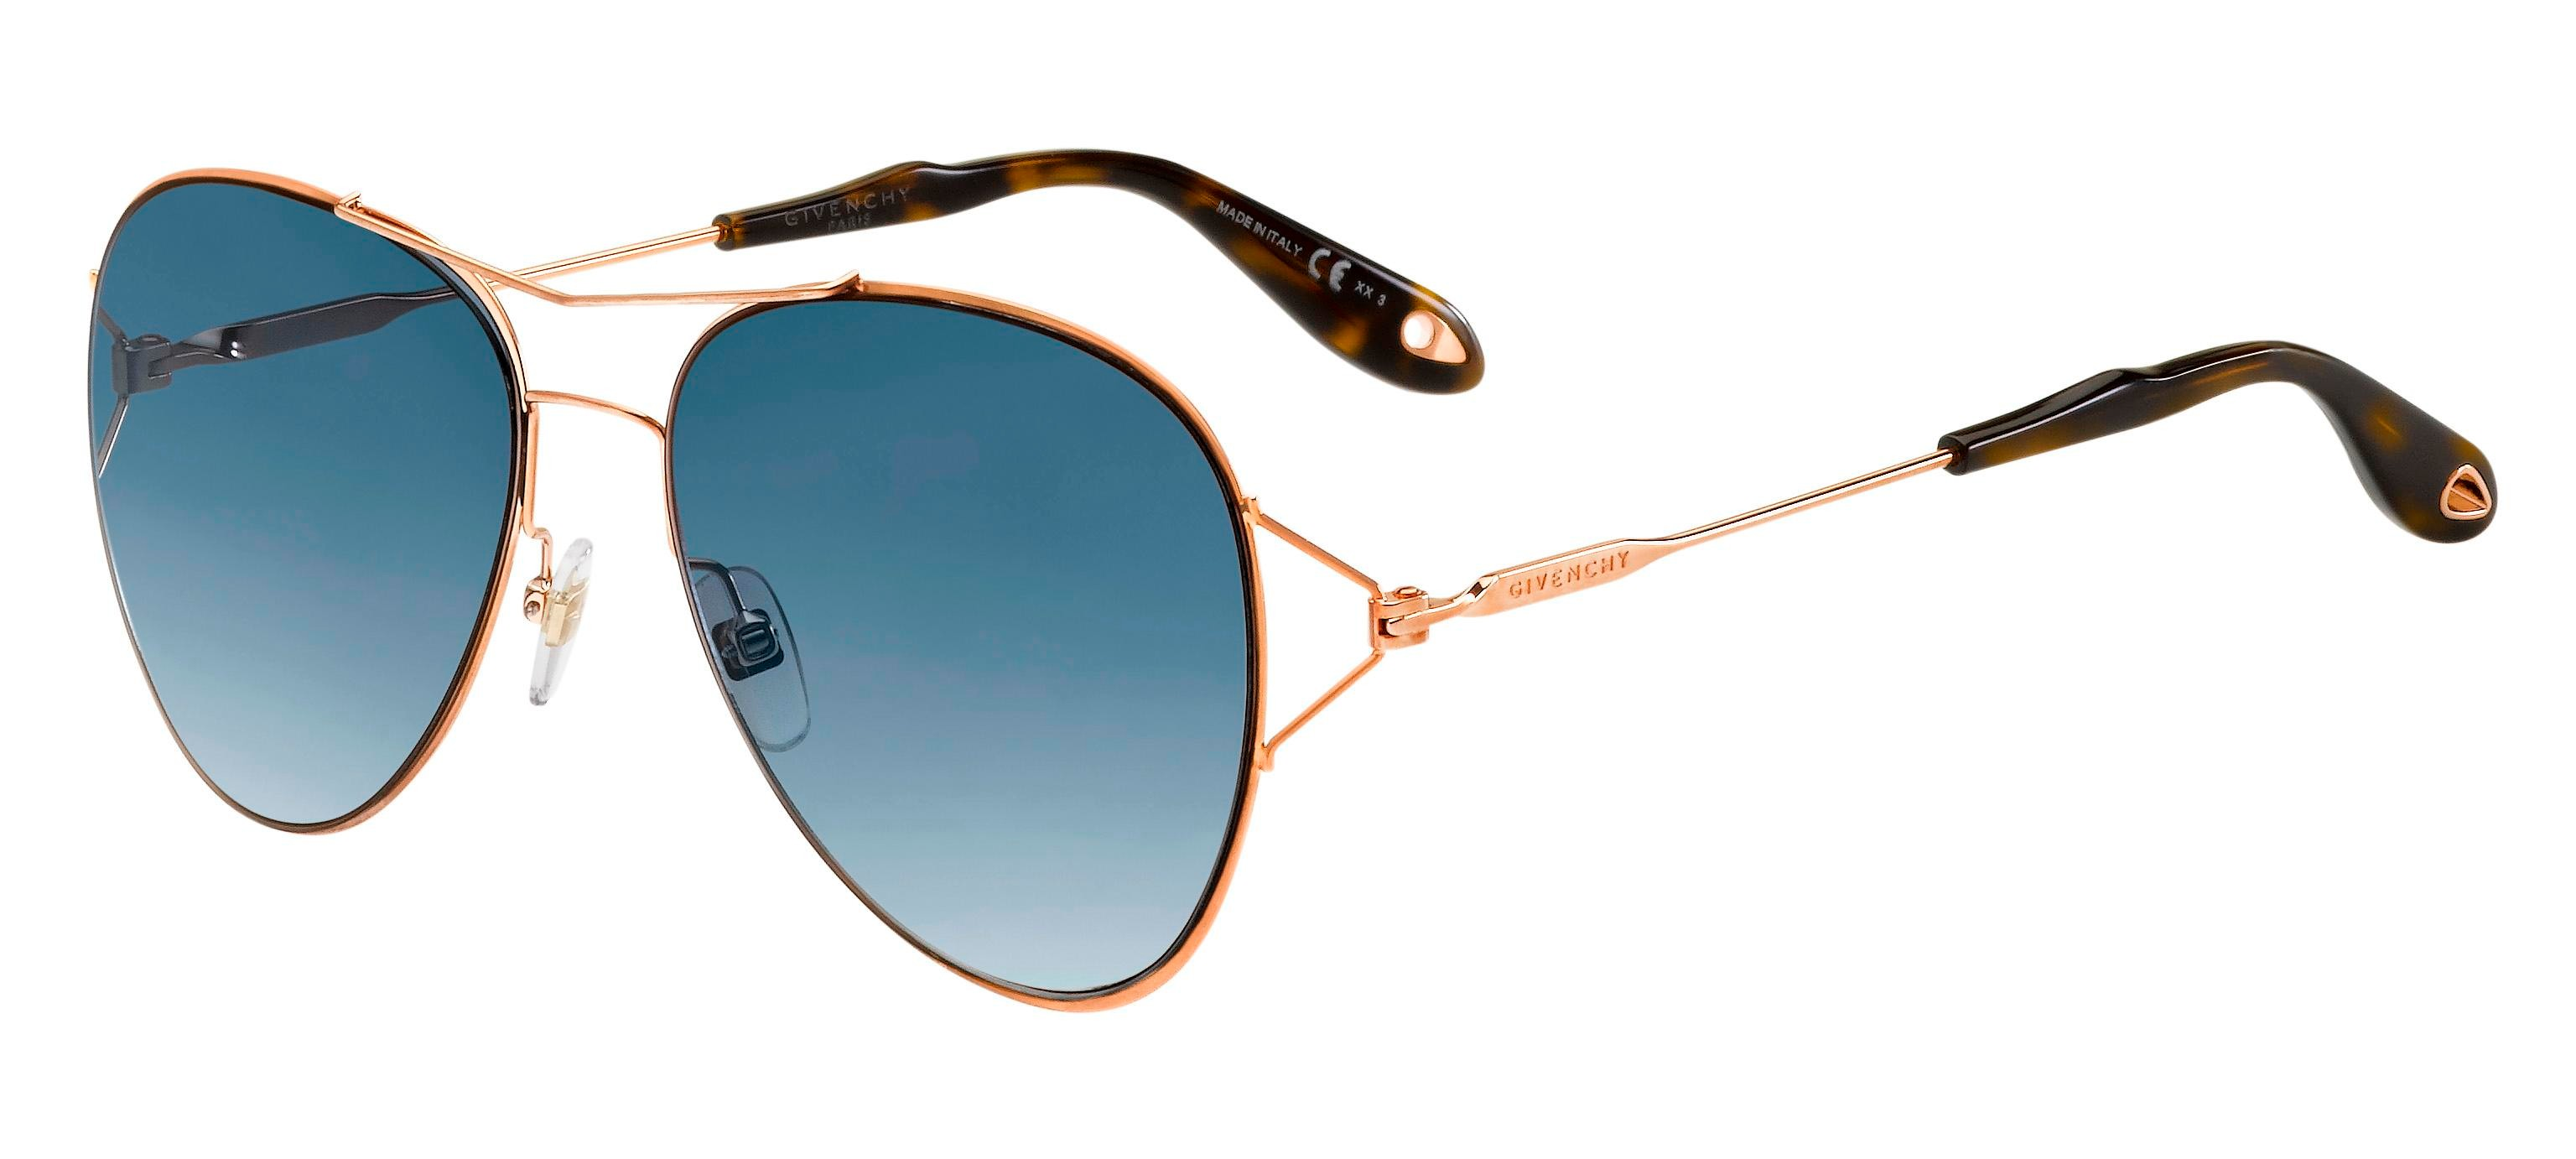 Givenchy GV 7005/S GOLD COPPER/BLUE SHADED GOLD MIRROR